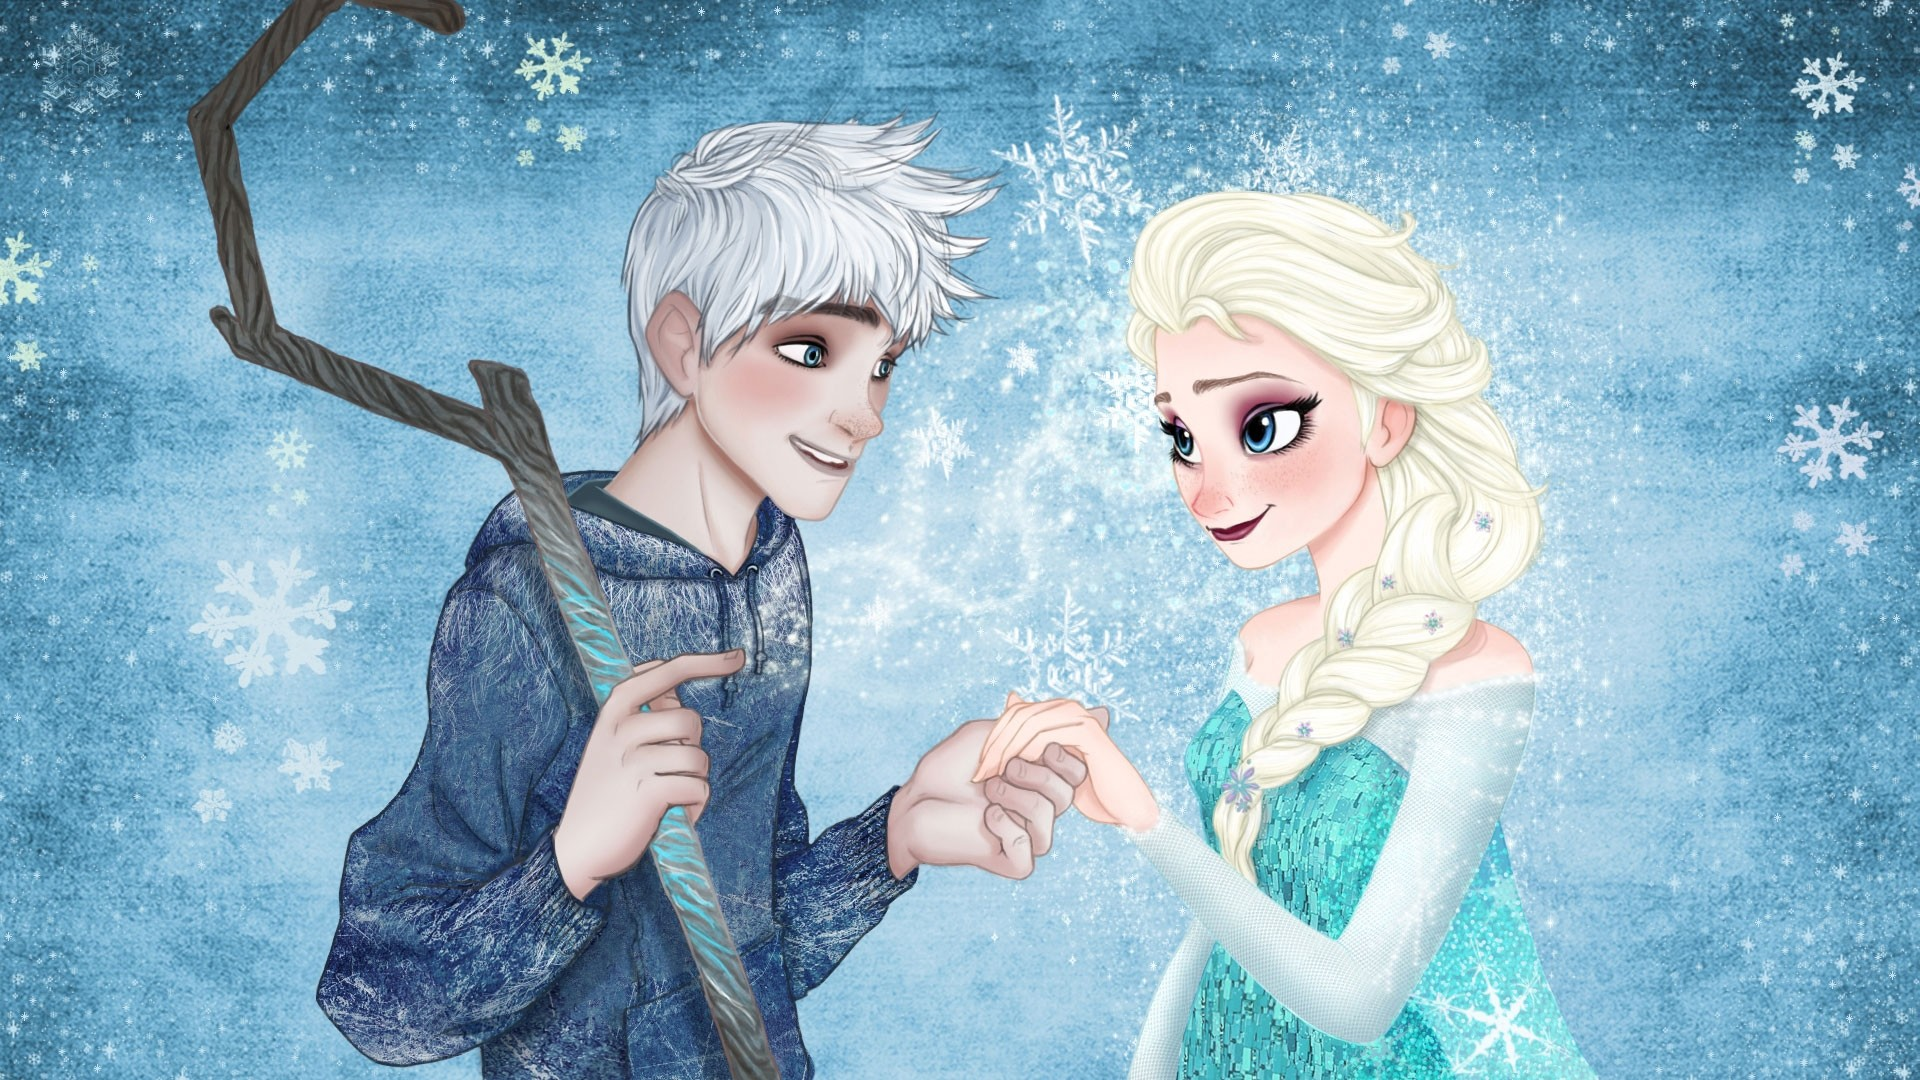 elsa and anna wallpapers,cartoon,illustration,water,anime,gesture